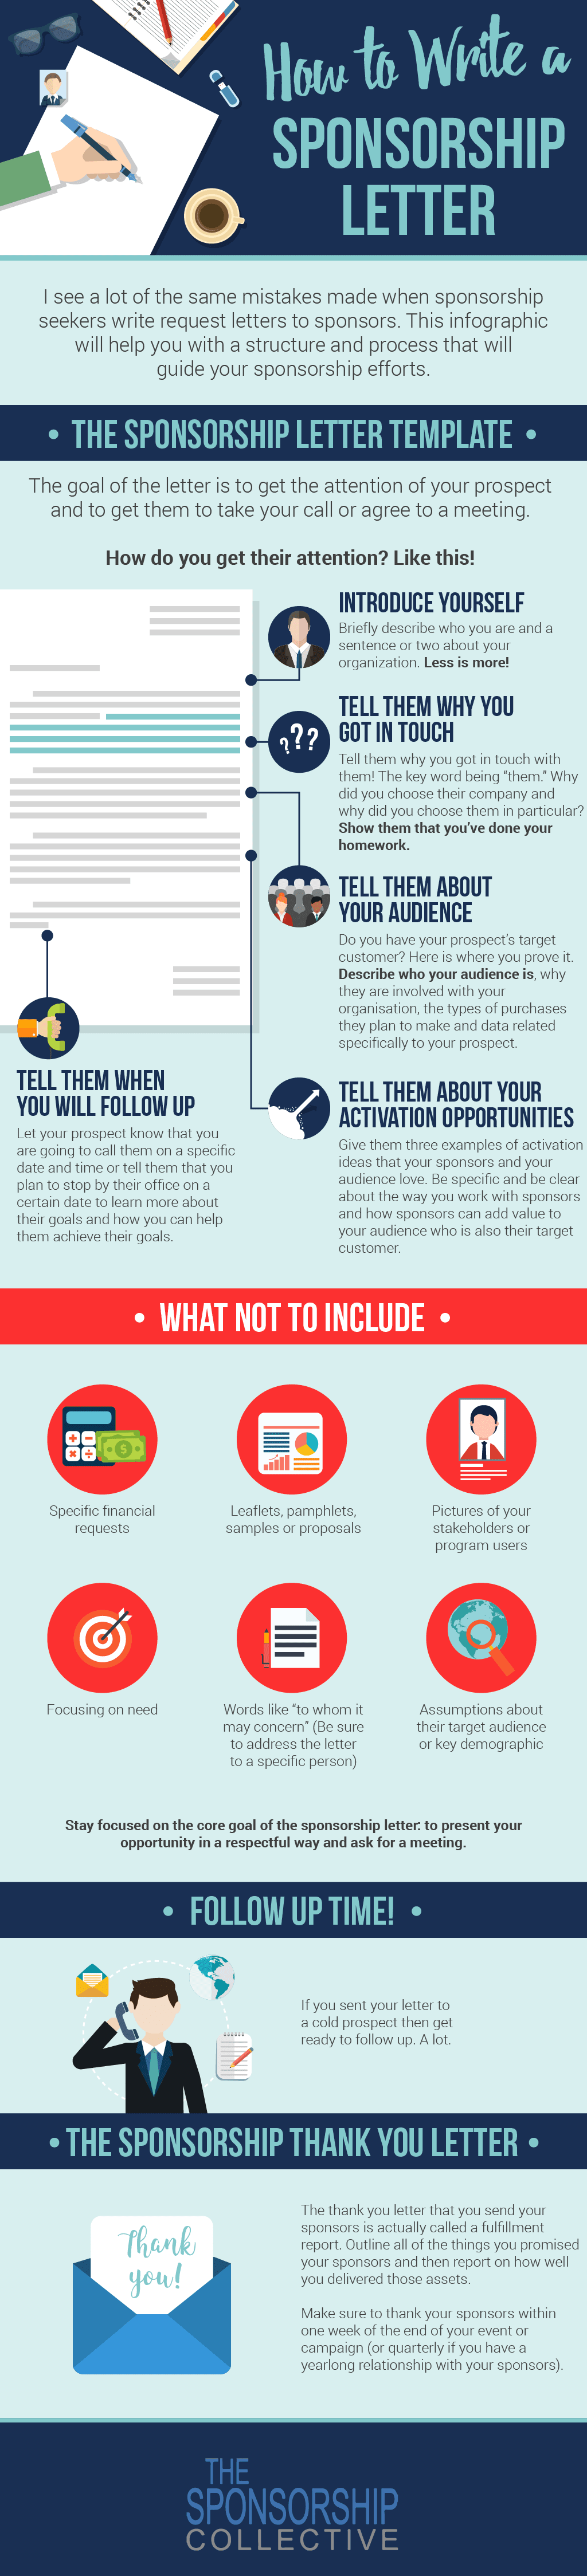 How To Write A Sponsorship Letter With A Template And Infographic